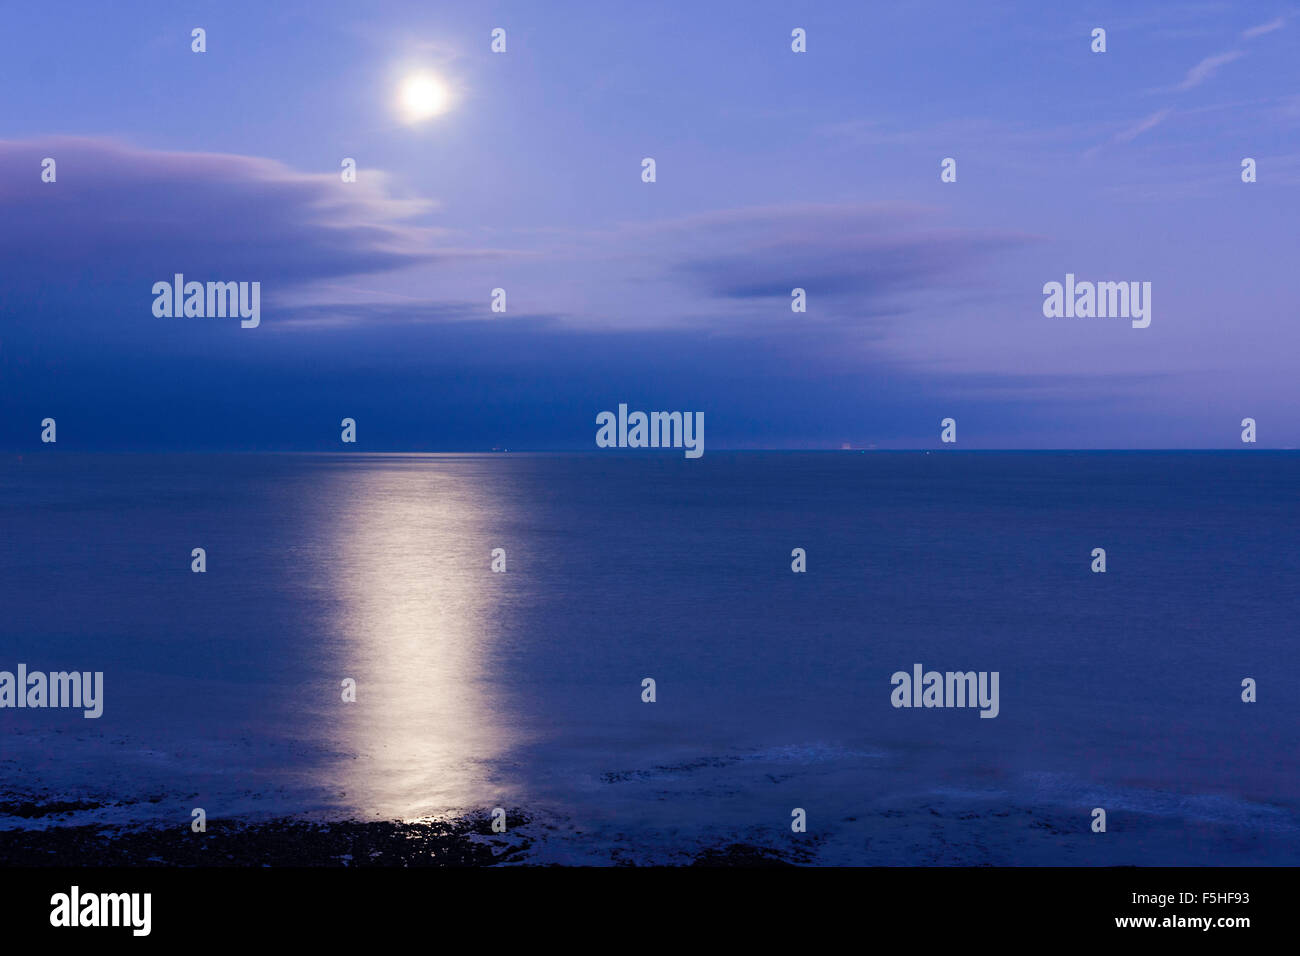 Super moon shinning in a mauve blue sky over a clam sea, the English Channel, off the kent Coast at Ramsgate, with - Stock Image